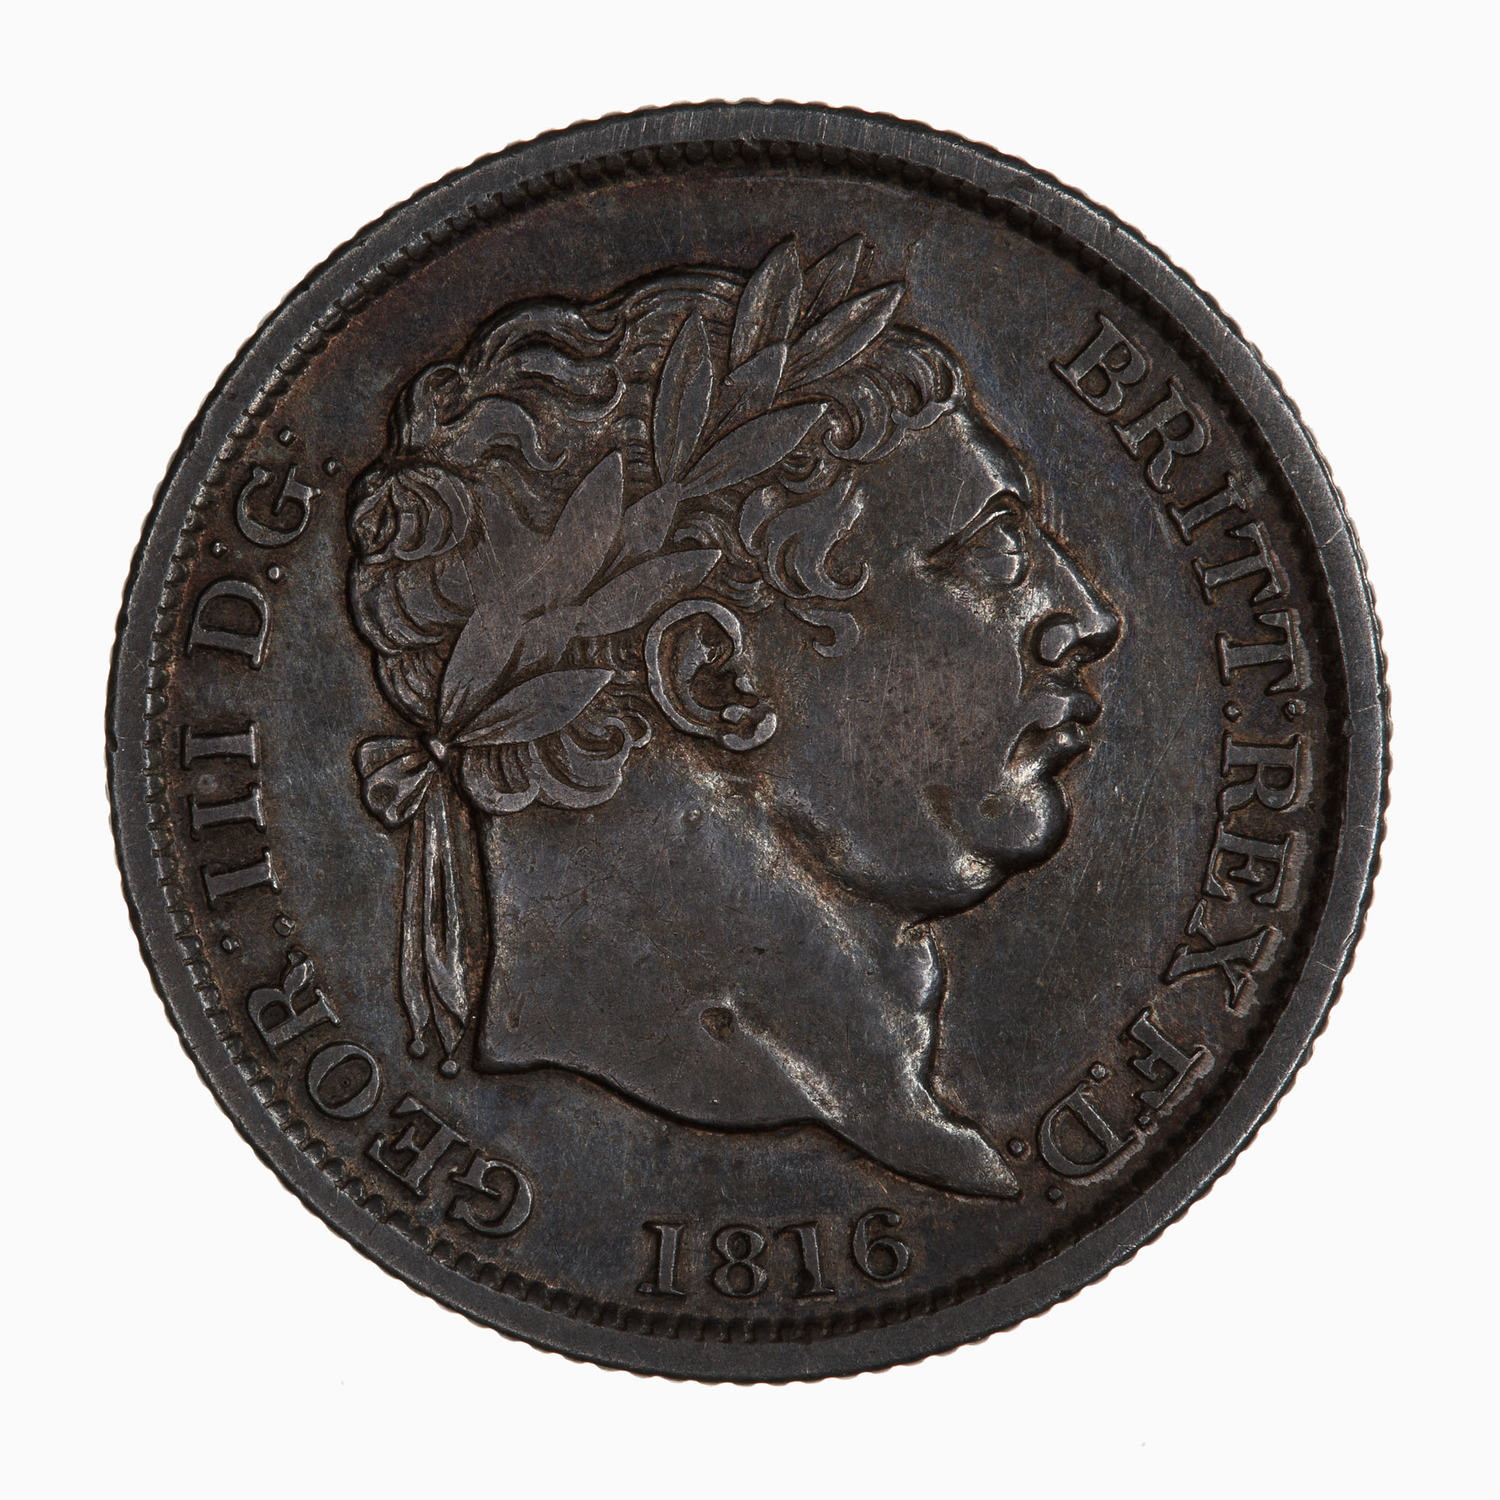 Shilling George III: Photo Coin - Shilling, George III, Great Britain, 1816